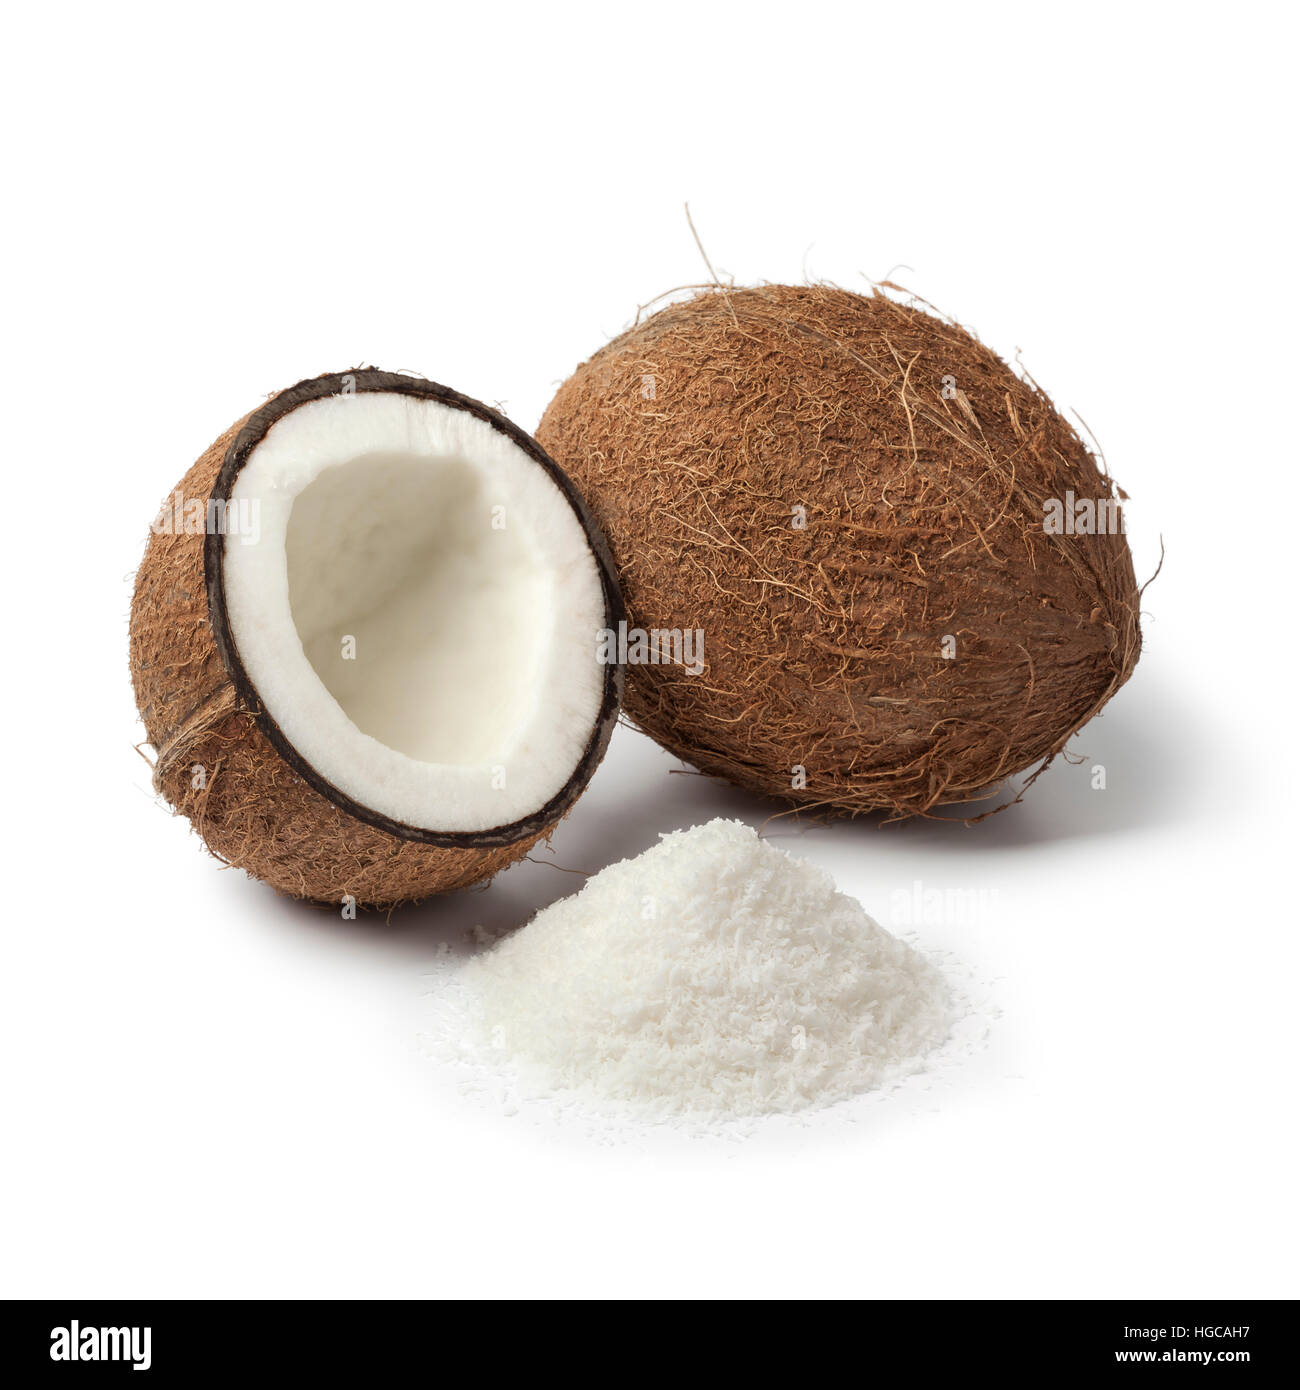 Coconuts with white shredded coconut meat isolated on white background Stock Photo